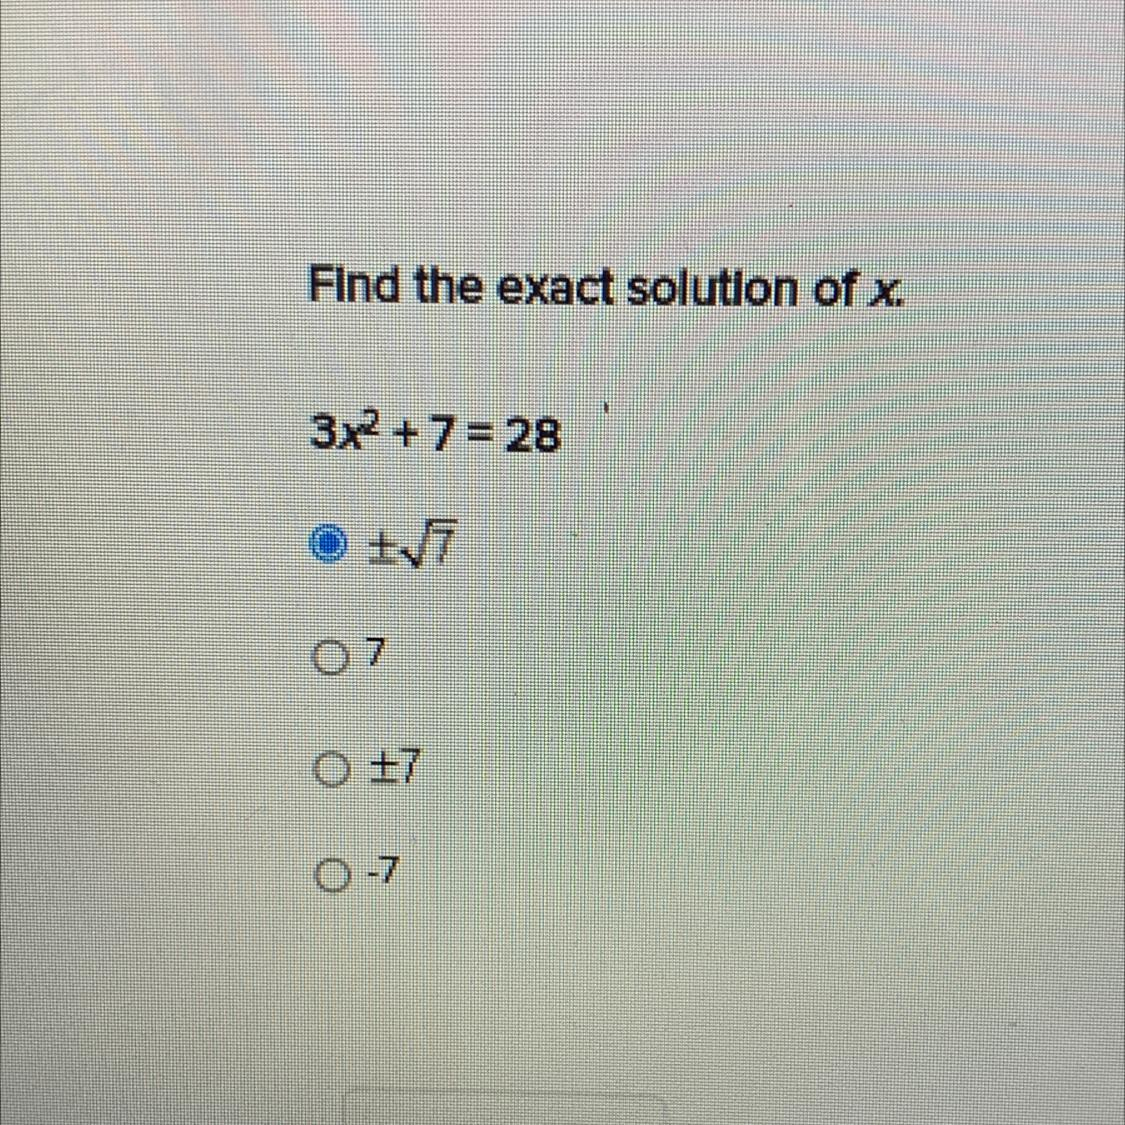 Find the exact solution of x 3x^2 + 7 = 28 help please!